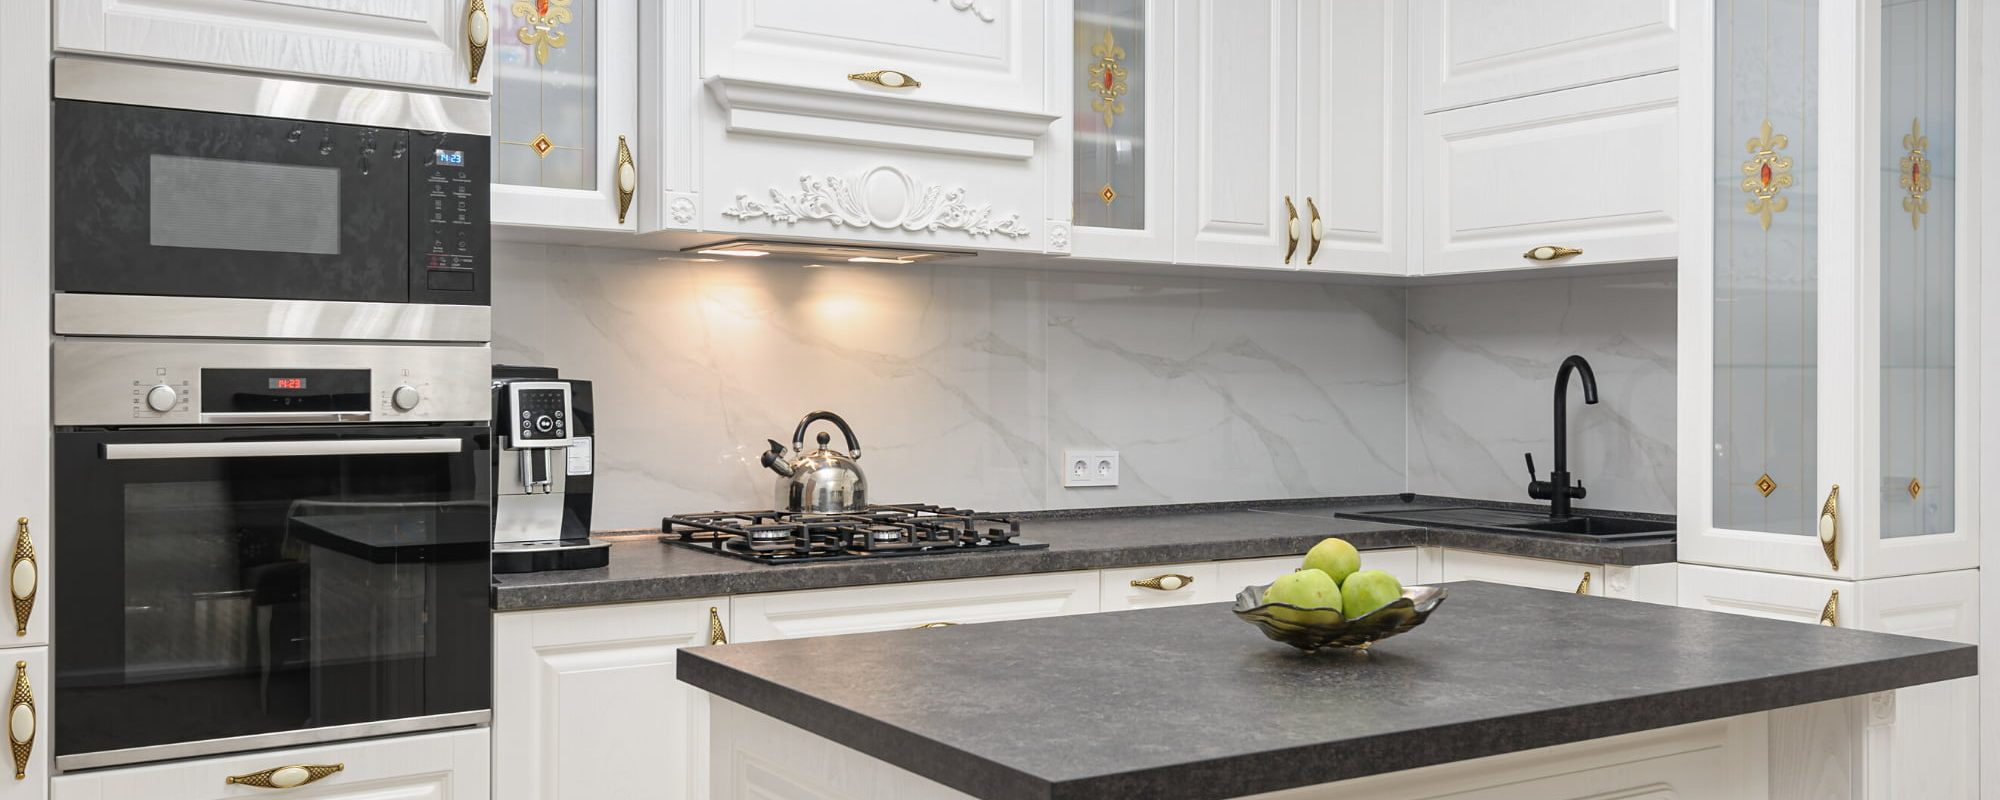 Counter tops with interesting designs